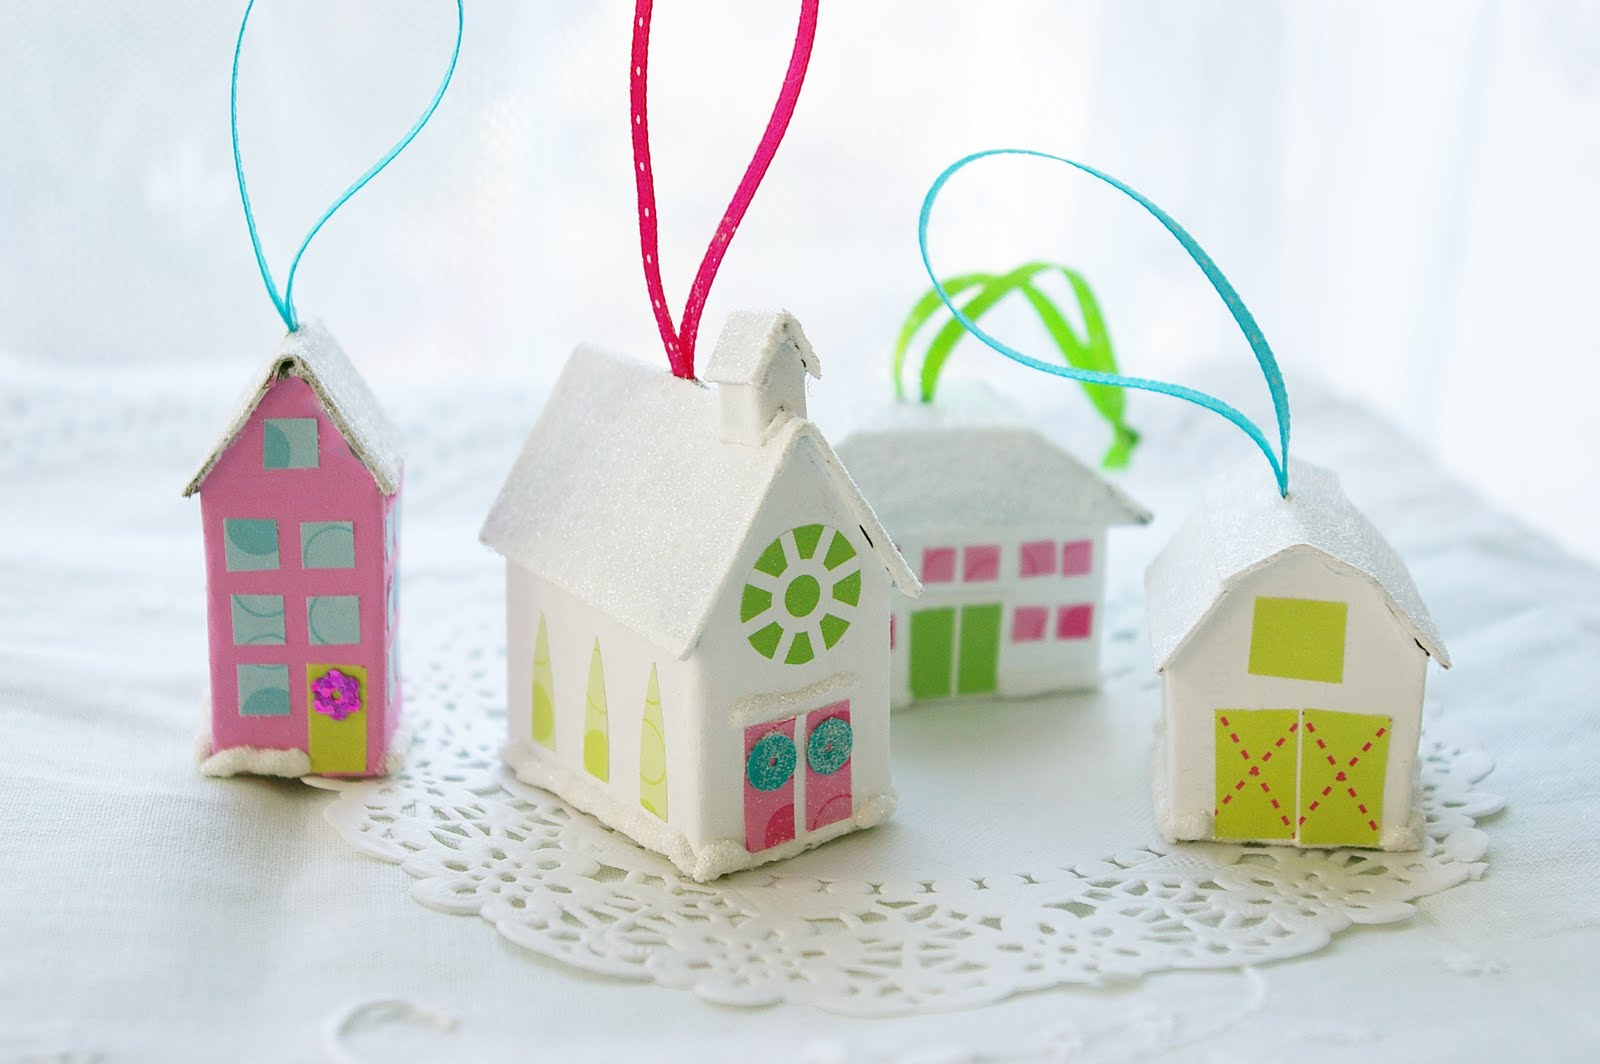 Be Differentact Normal Tissue Box House Ornaments